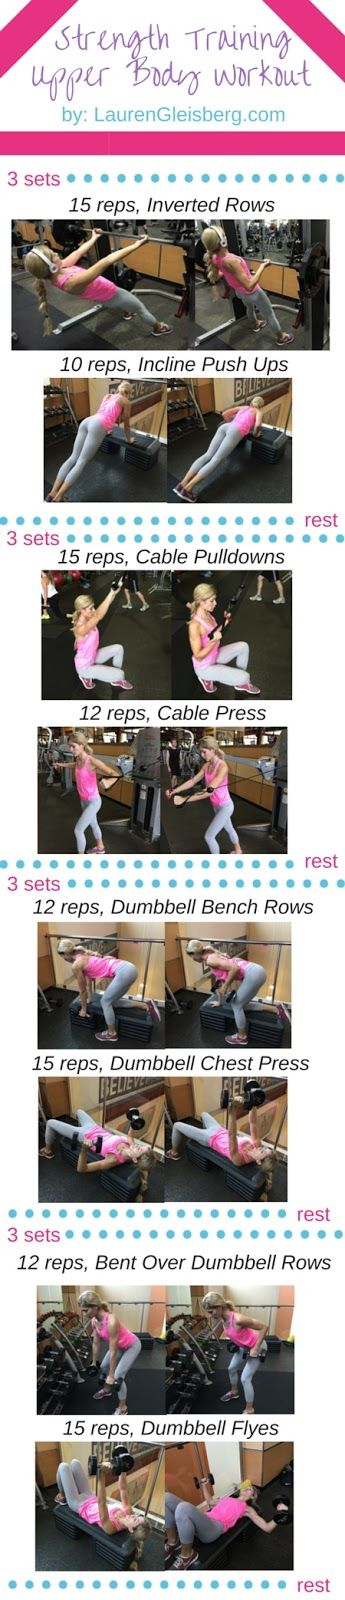 Chest & Back Upper Body Workout   click for the full workout plan